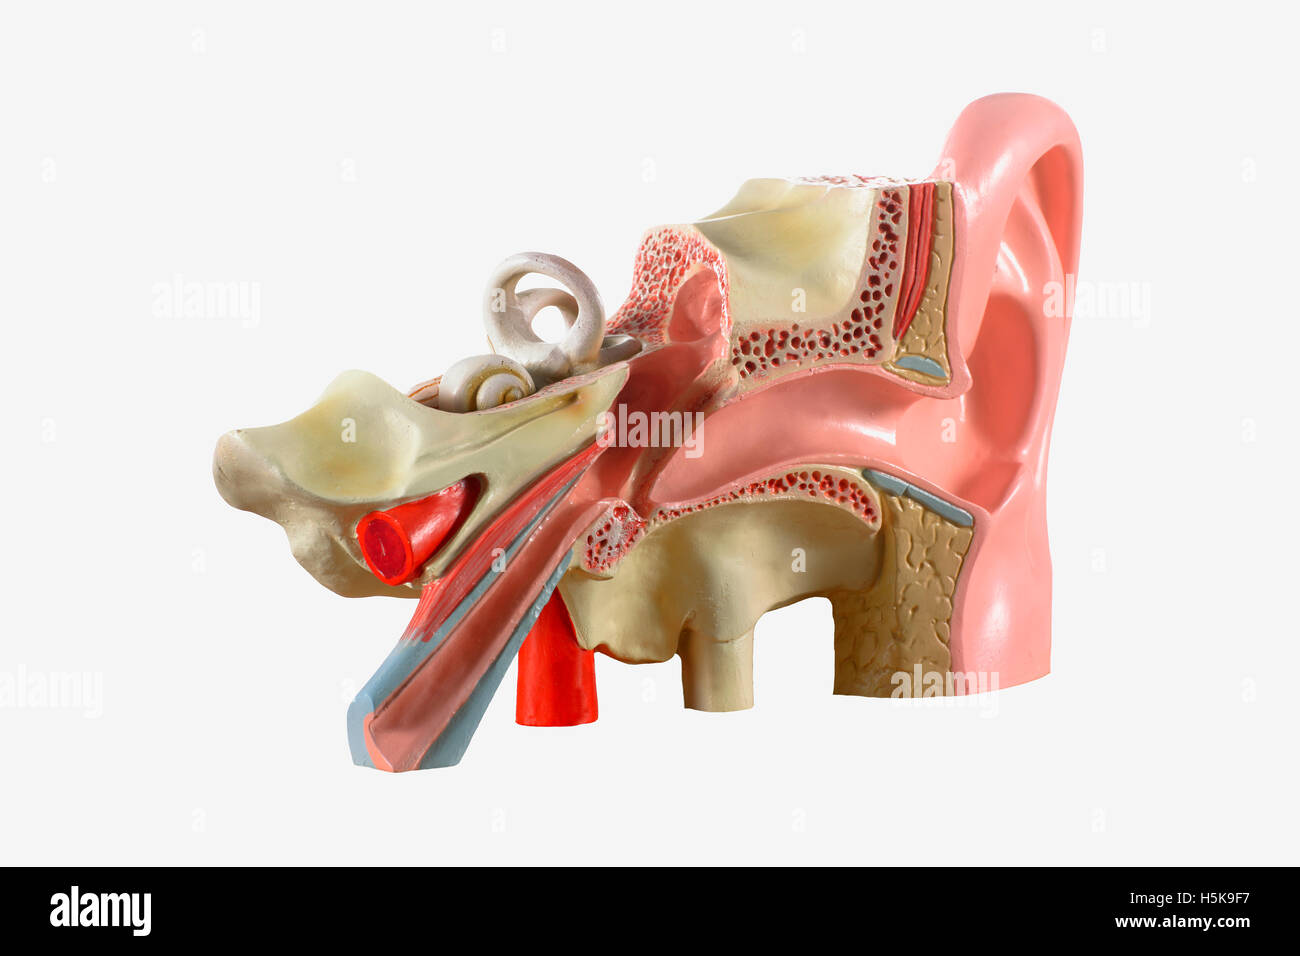 Anatomical Model Of The Middle Ear Stock Photo 123970427 Alamy